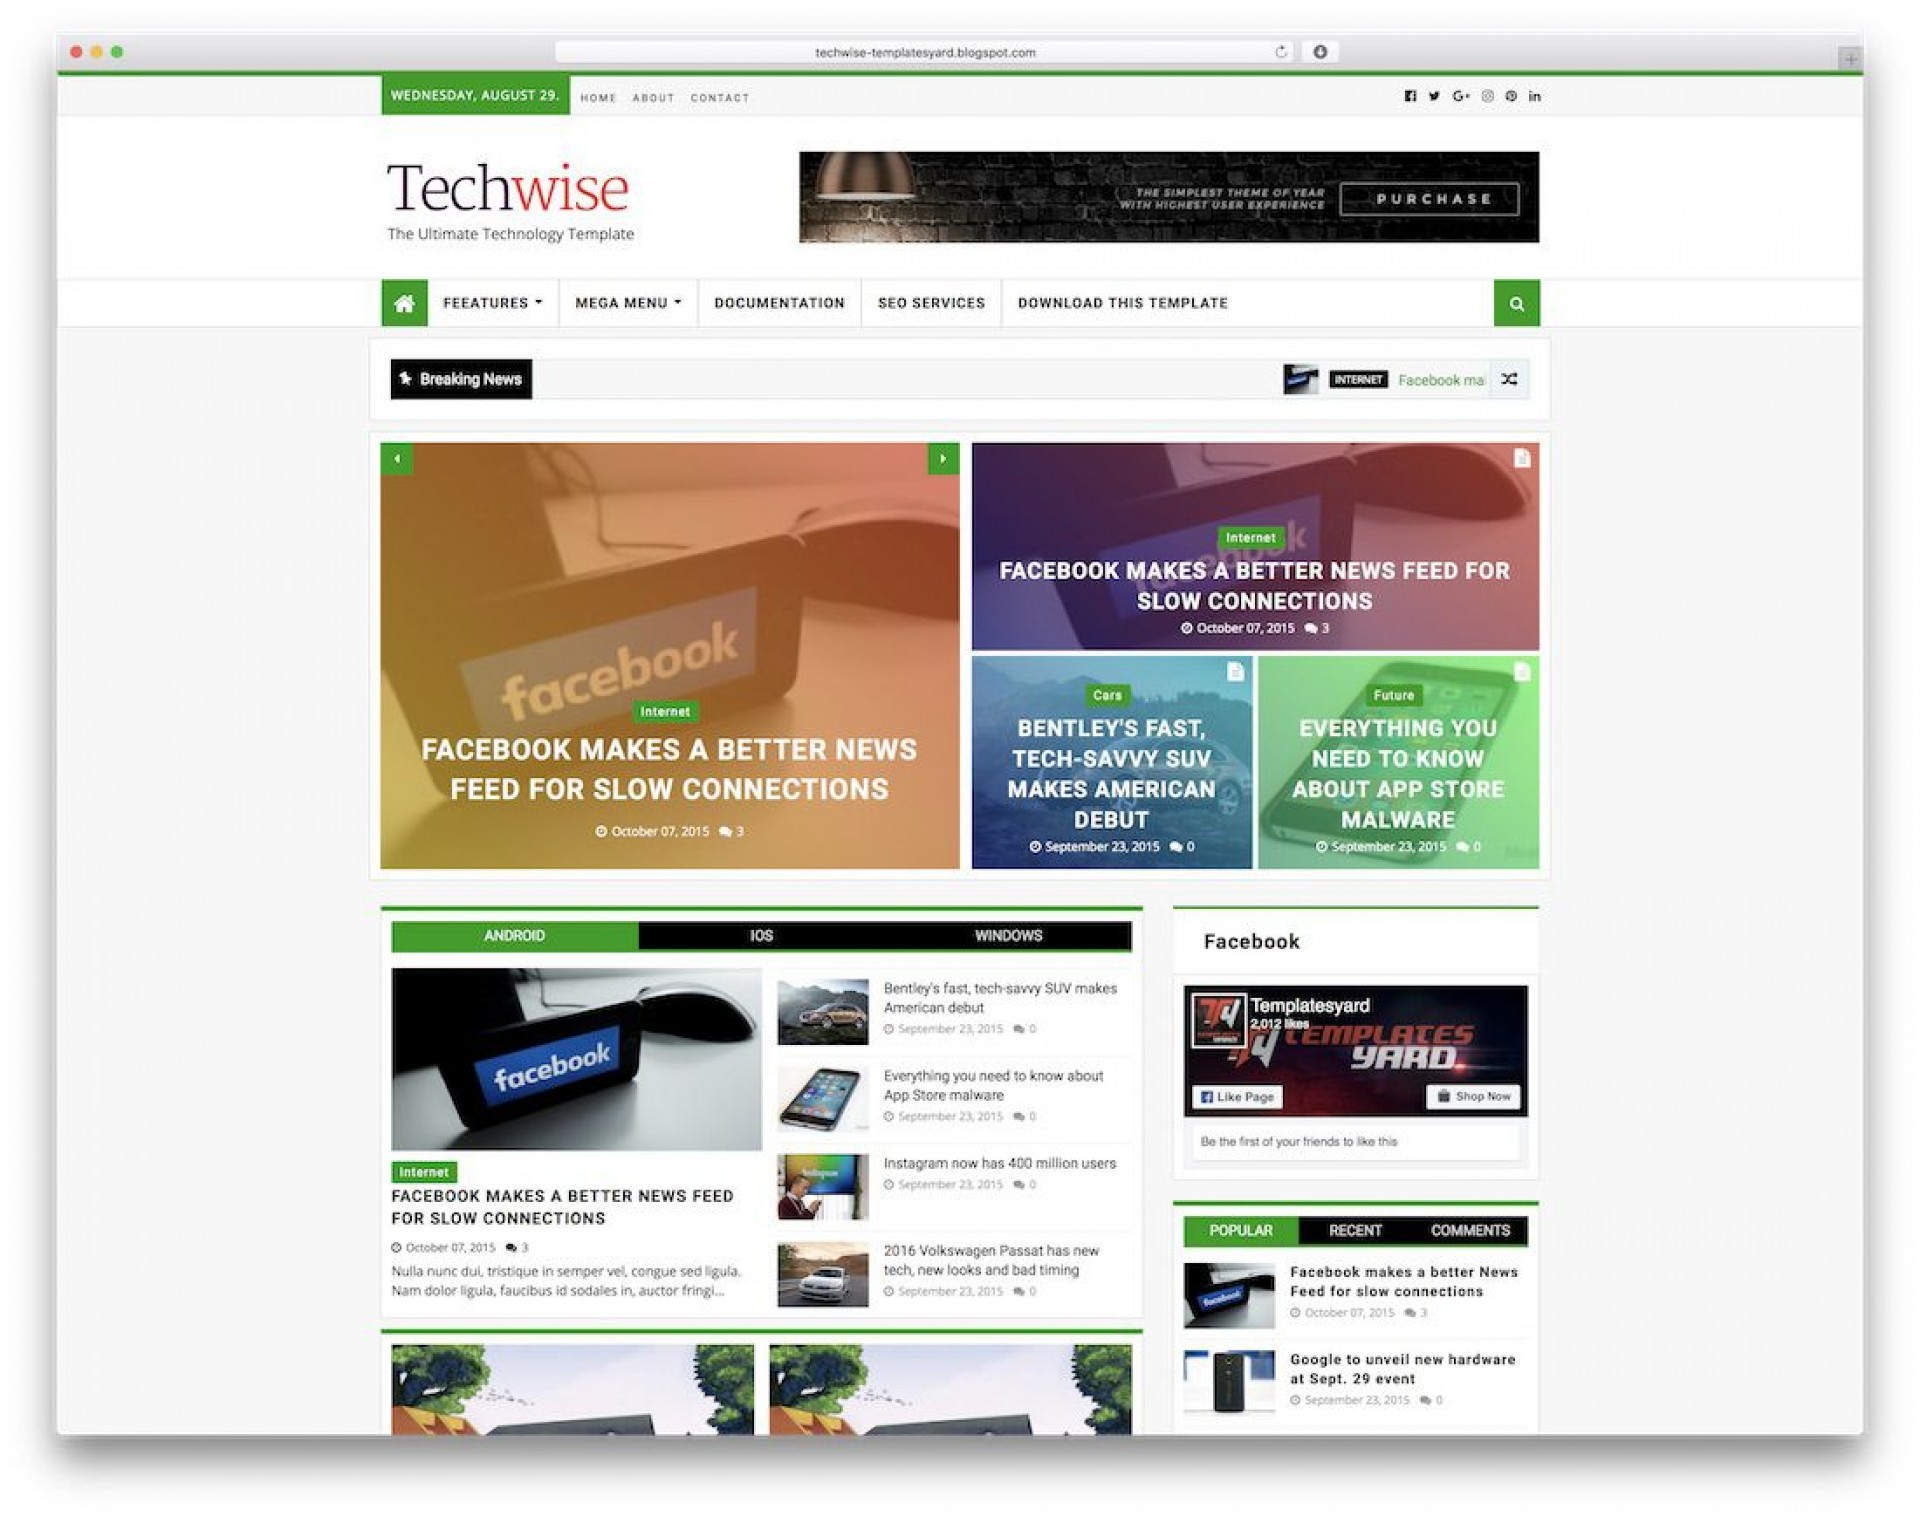 009 Surprising Free Template For Blogger Highest Clarity  Blog Best Photographer Xml Download1920